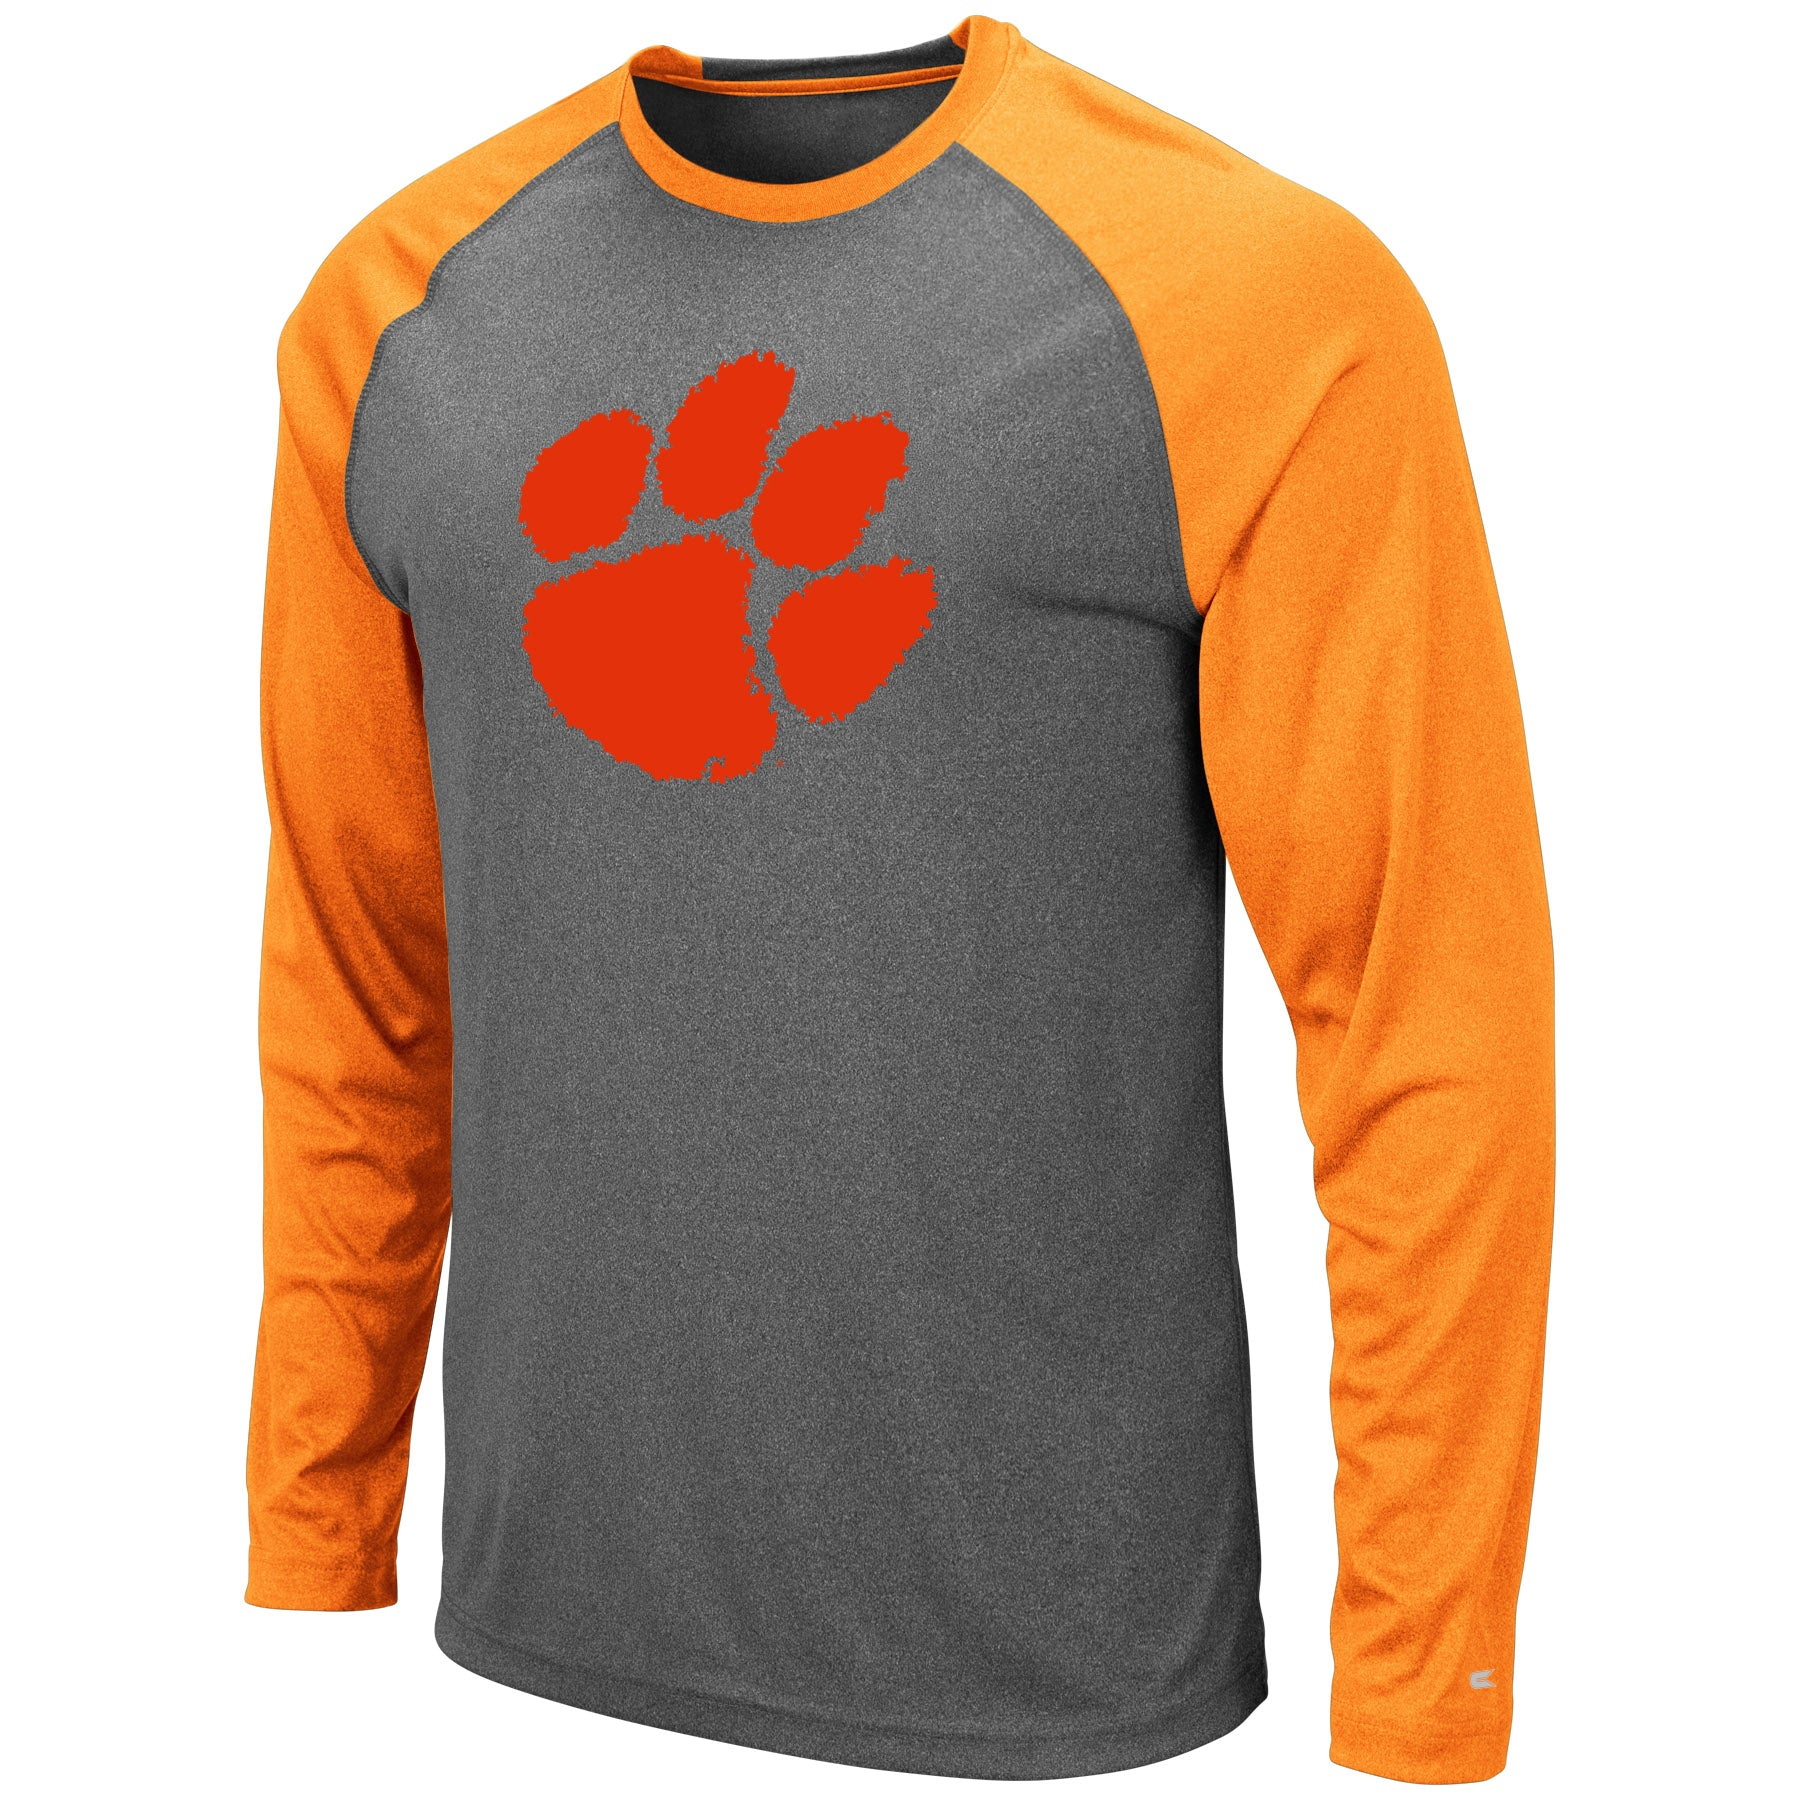 Clemson University Rad Tad Raglan Long Sleeve T-shirt